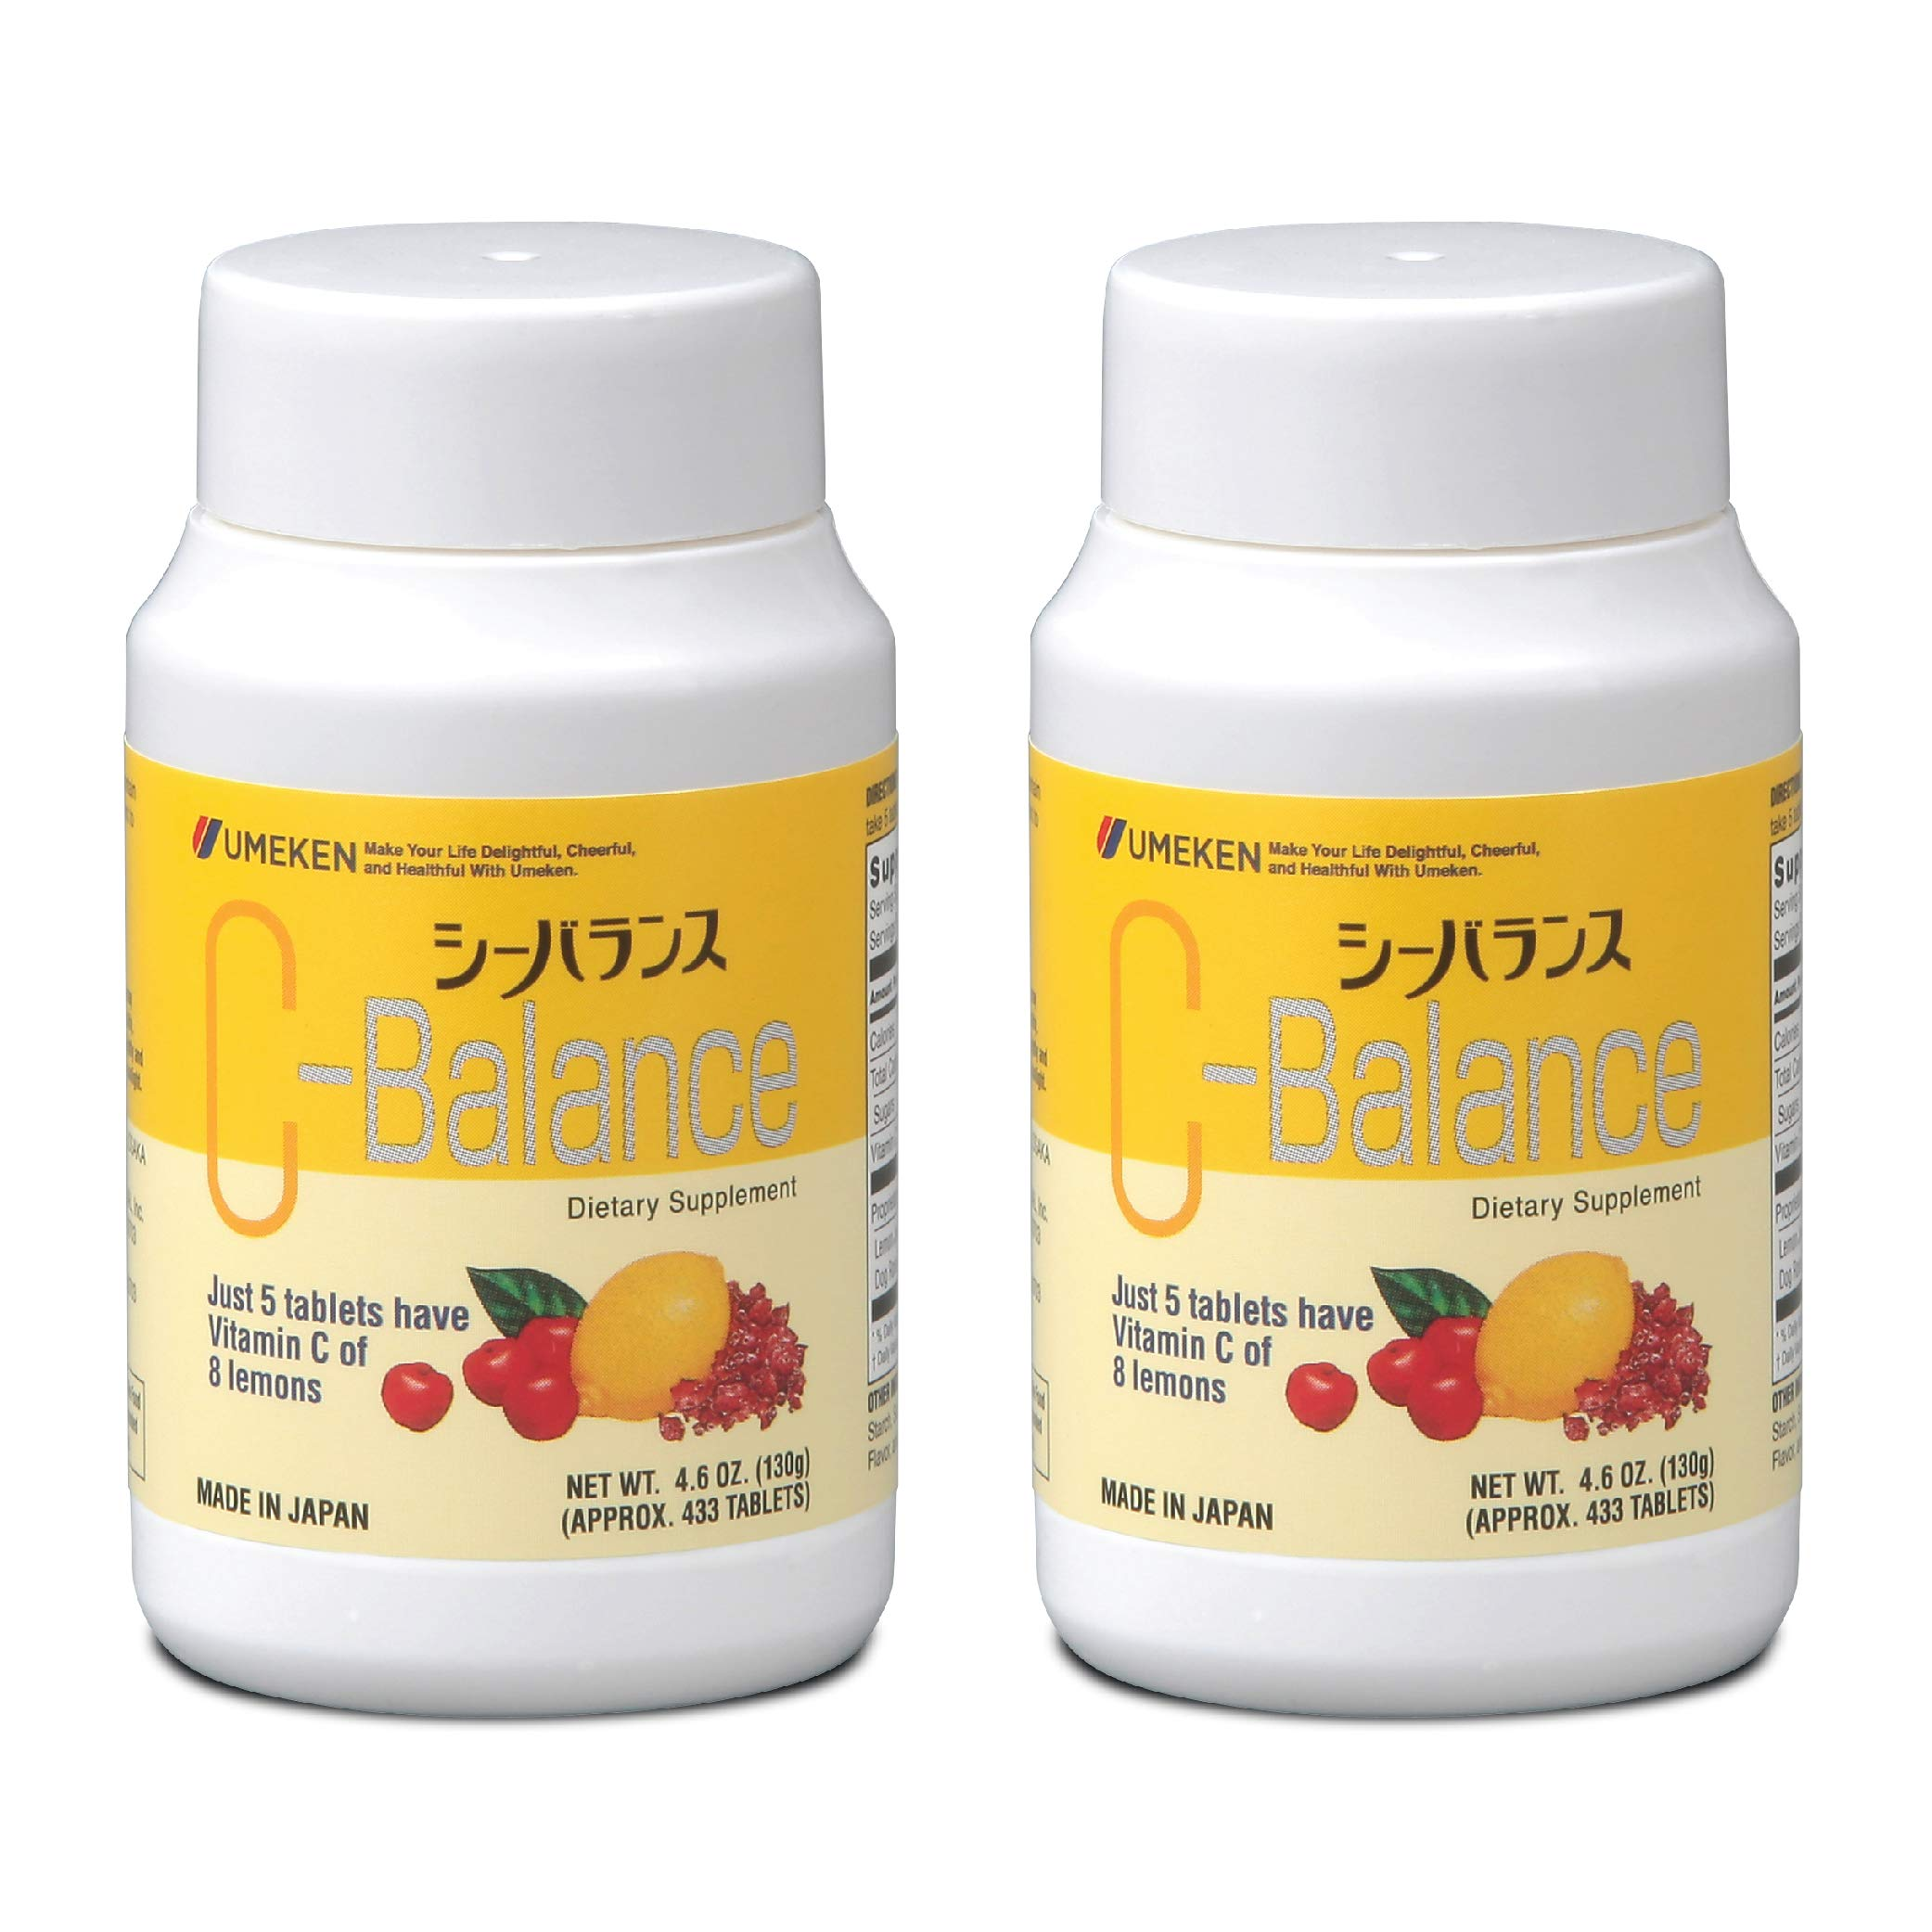 2X Umeken C-Balance (130g) - Highly Concentrated Vitamin C containing antioxidants, Citric Acid. Chewable, Great for Kids. Made in Japan. About a 2-3 Month Supply per Bottle. (Small Size)